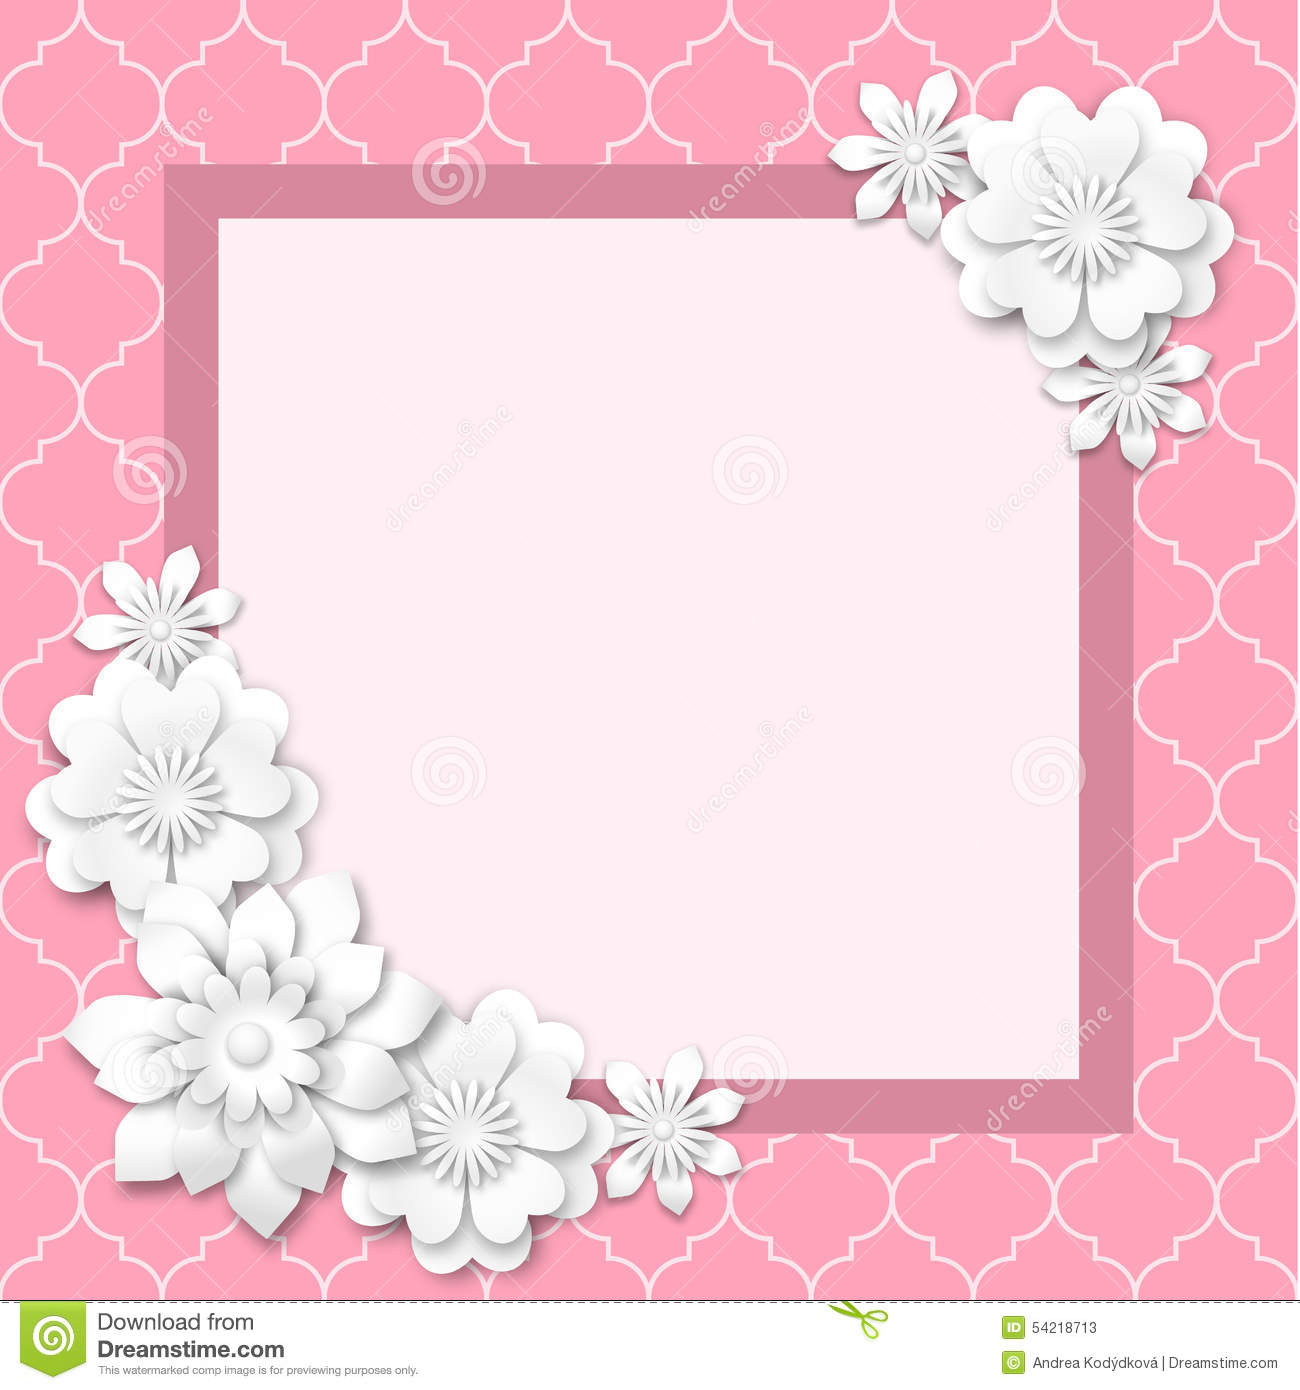 Pink Image Frame With White 3d Flowers Stock Vector - Illustration ...